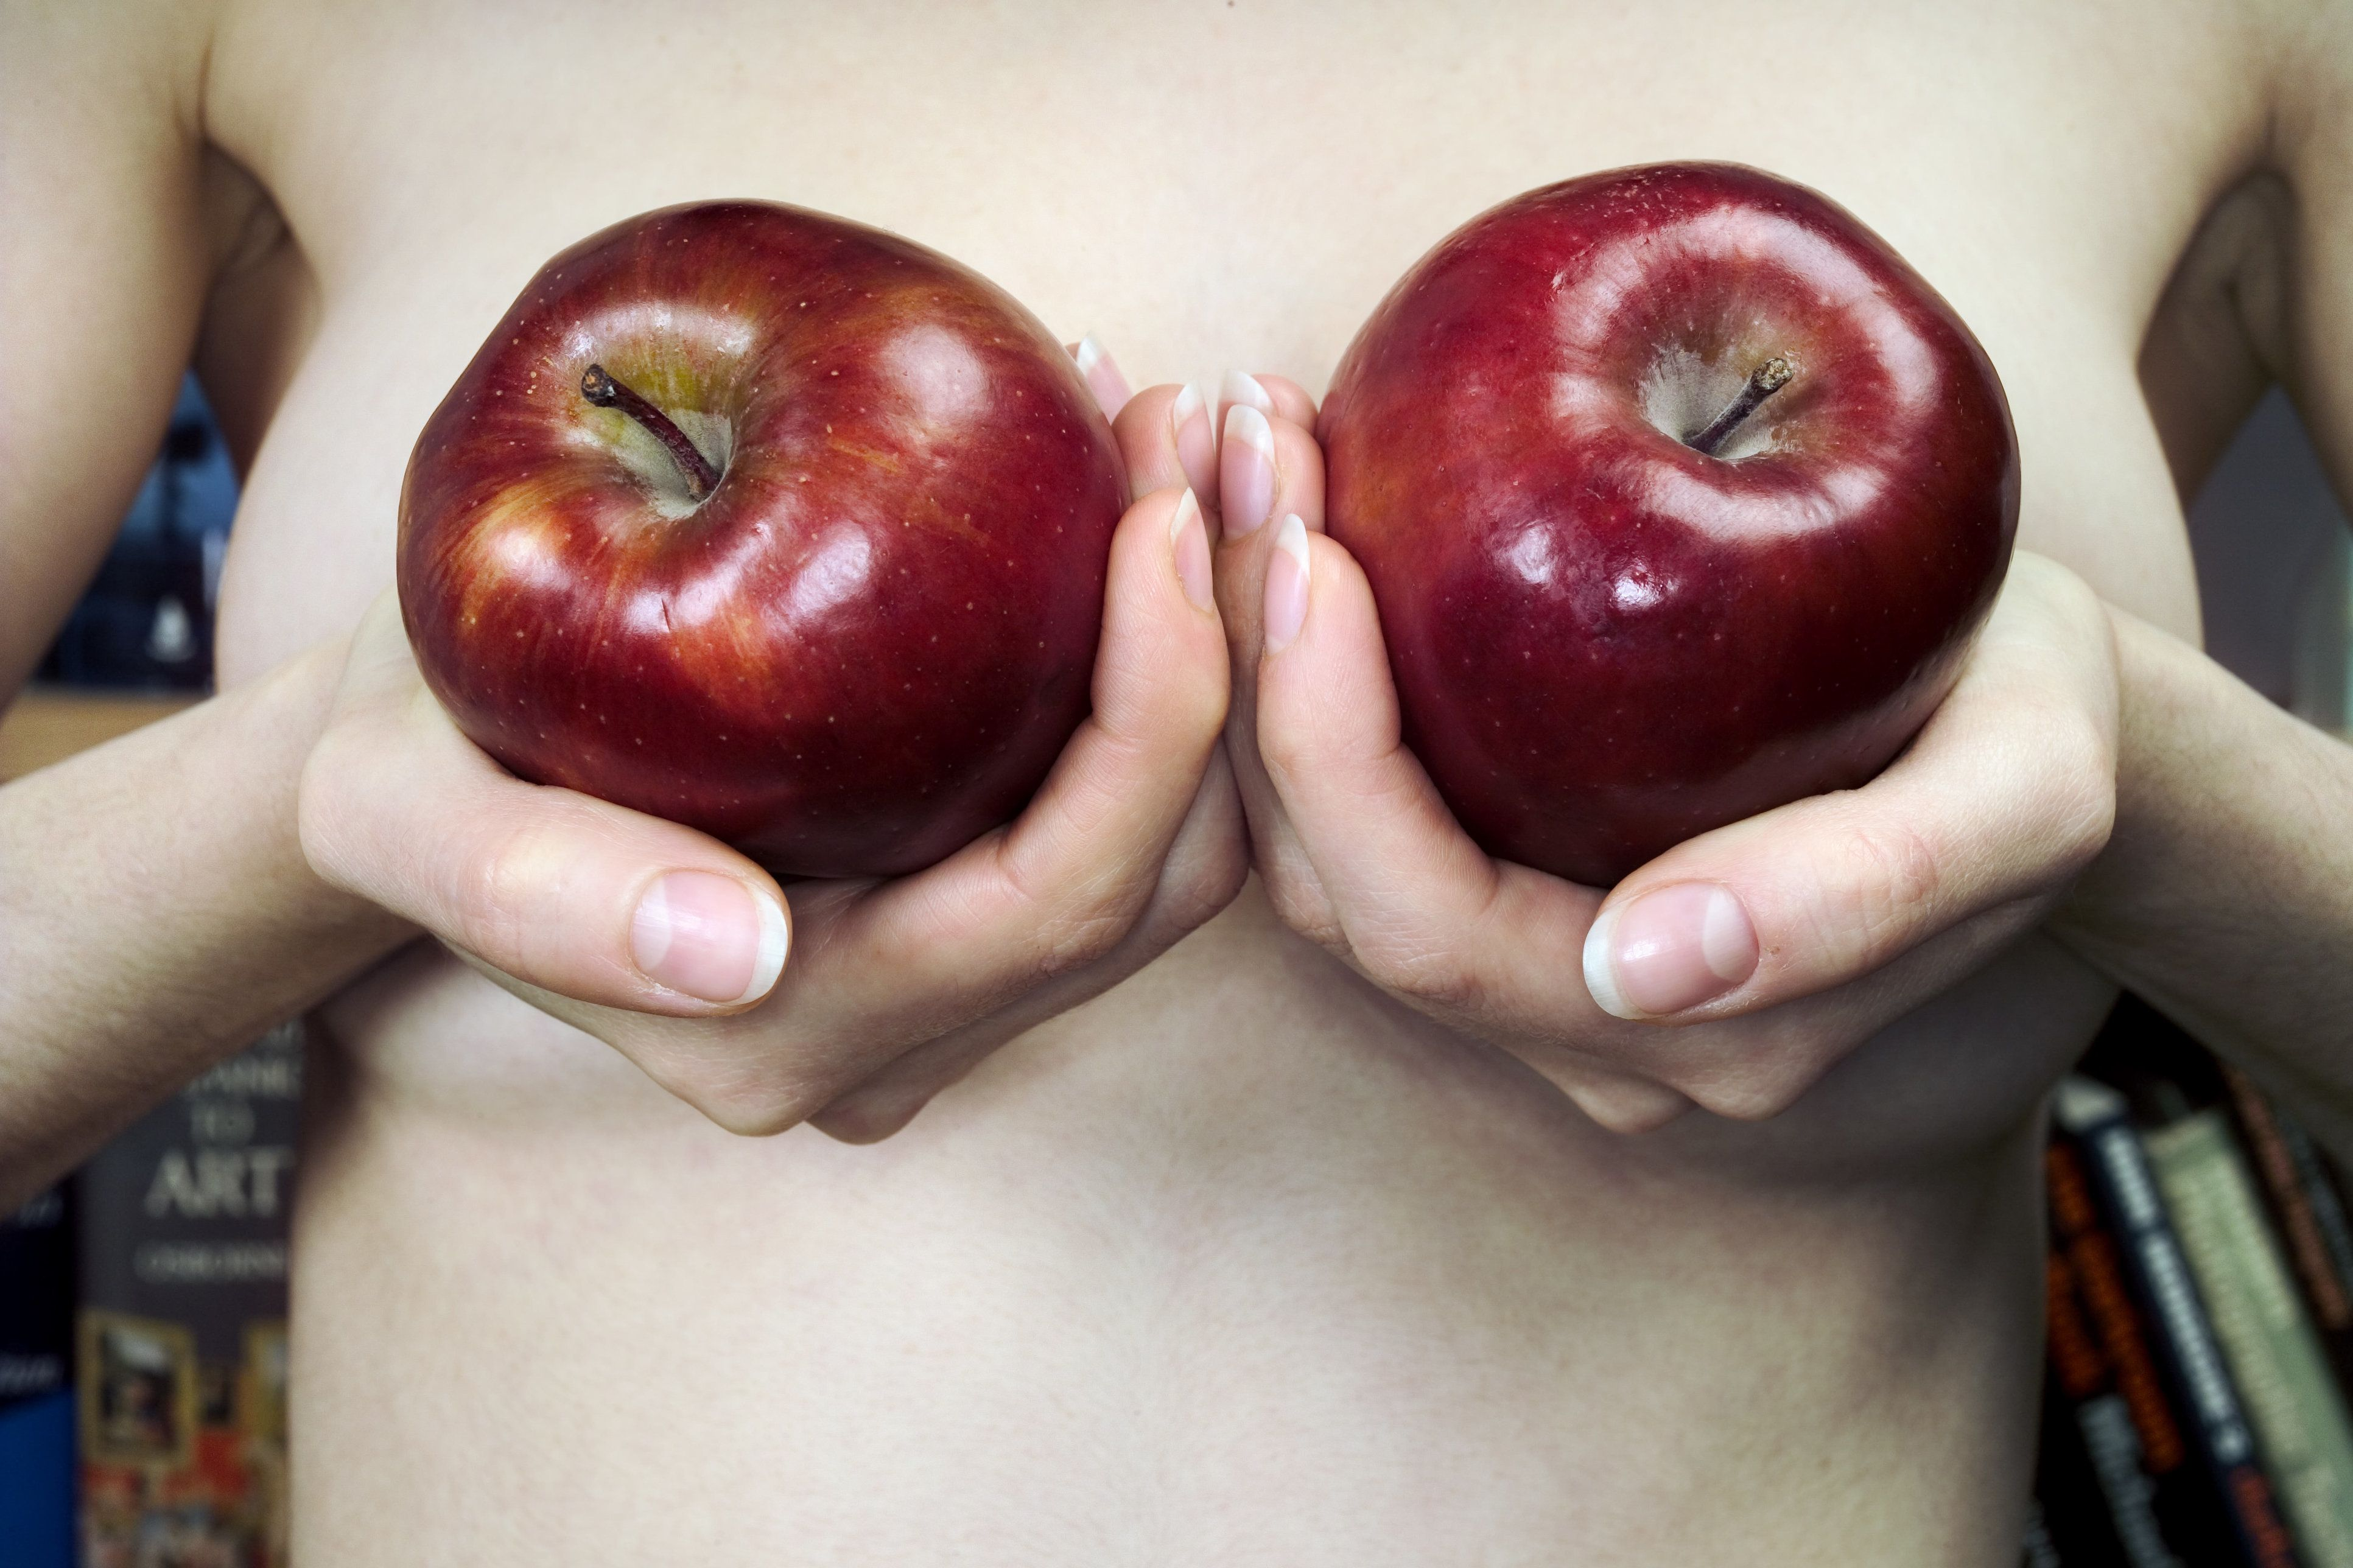 Naked female with two apples covering breasts